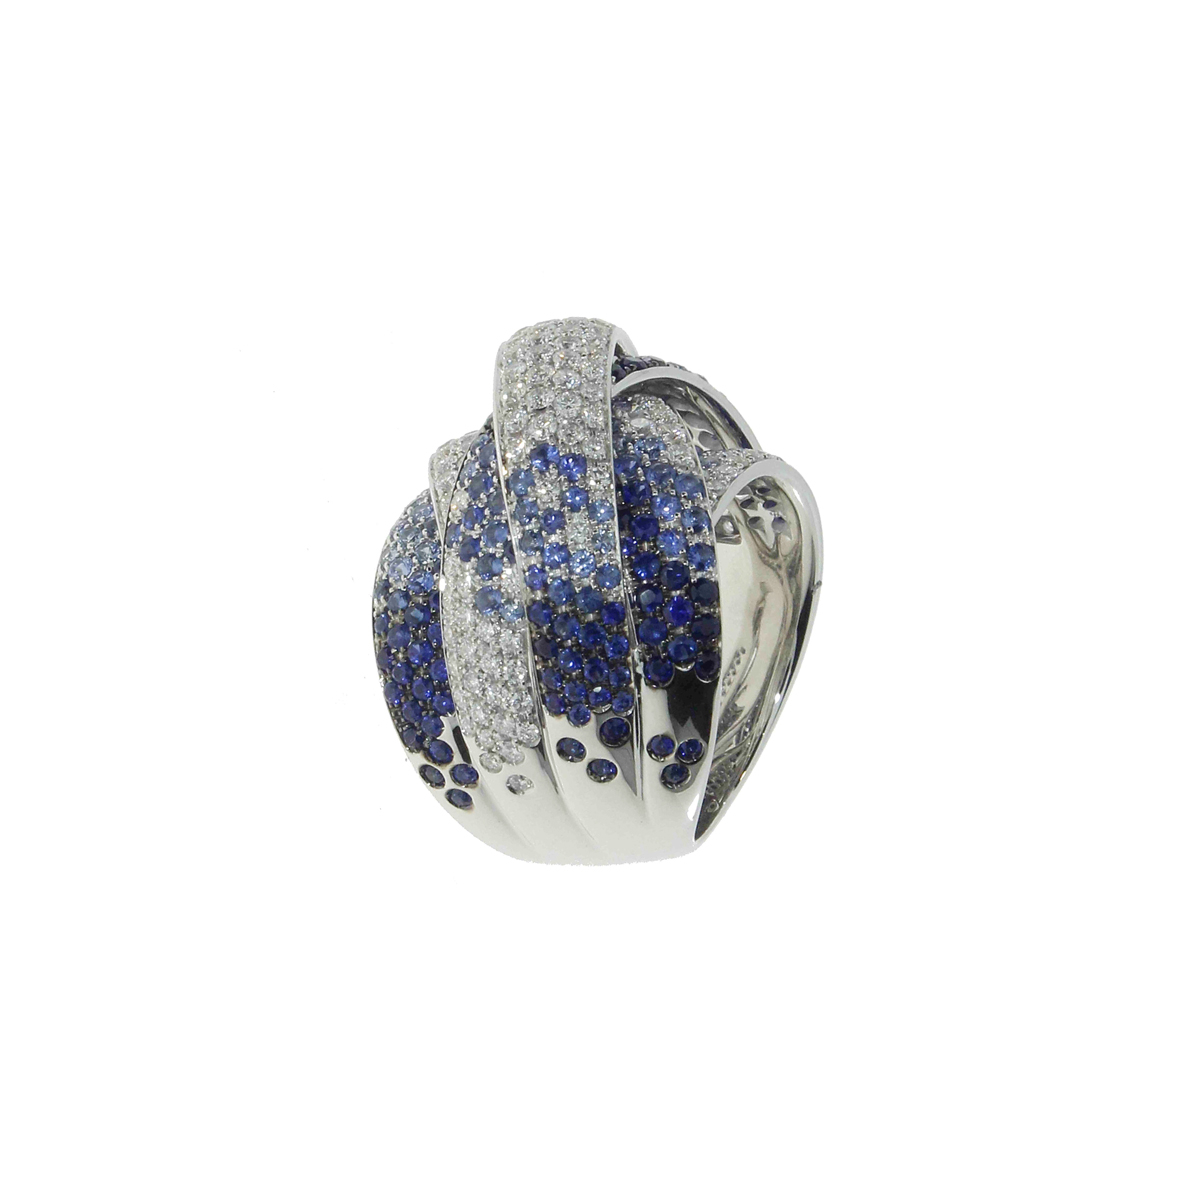 Intertwined Band Ring with Diamonds and Sapphires